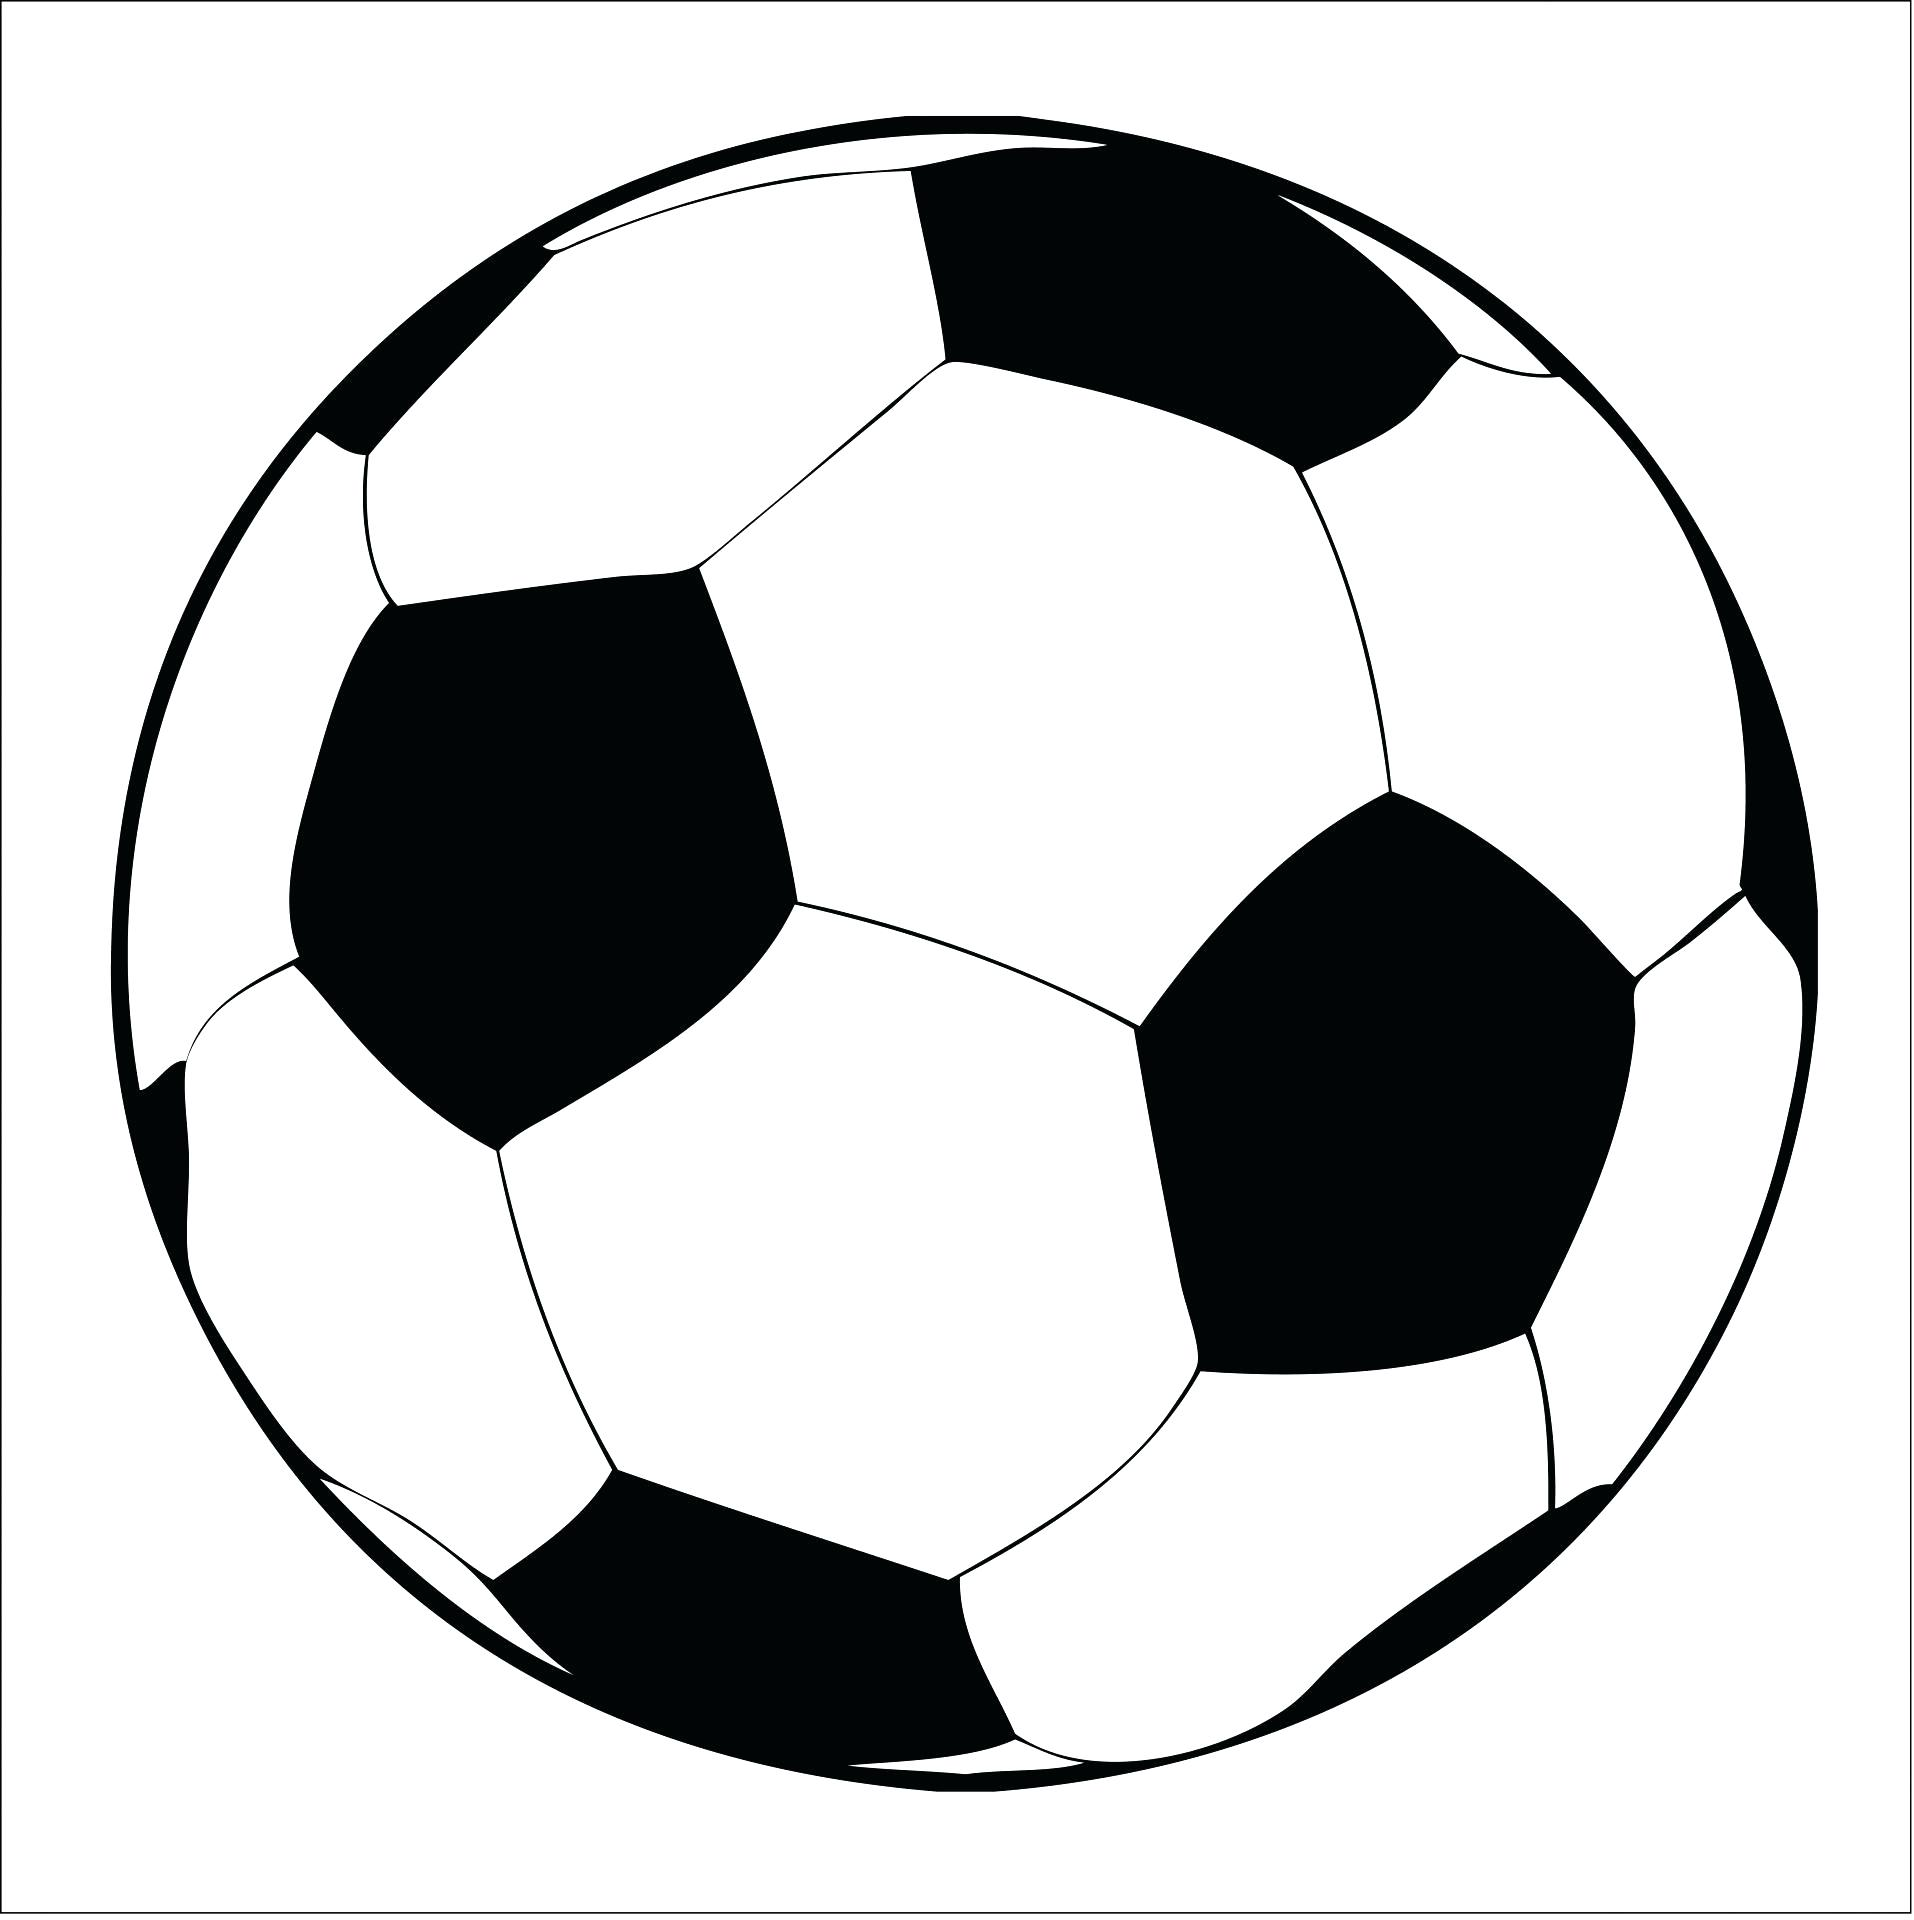 1914x1920 Soccer Ball Stencil Networktopology 2014 Fifa World Cup Location